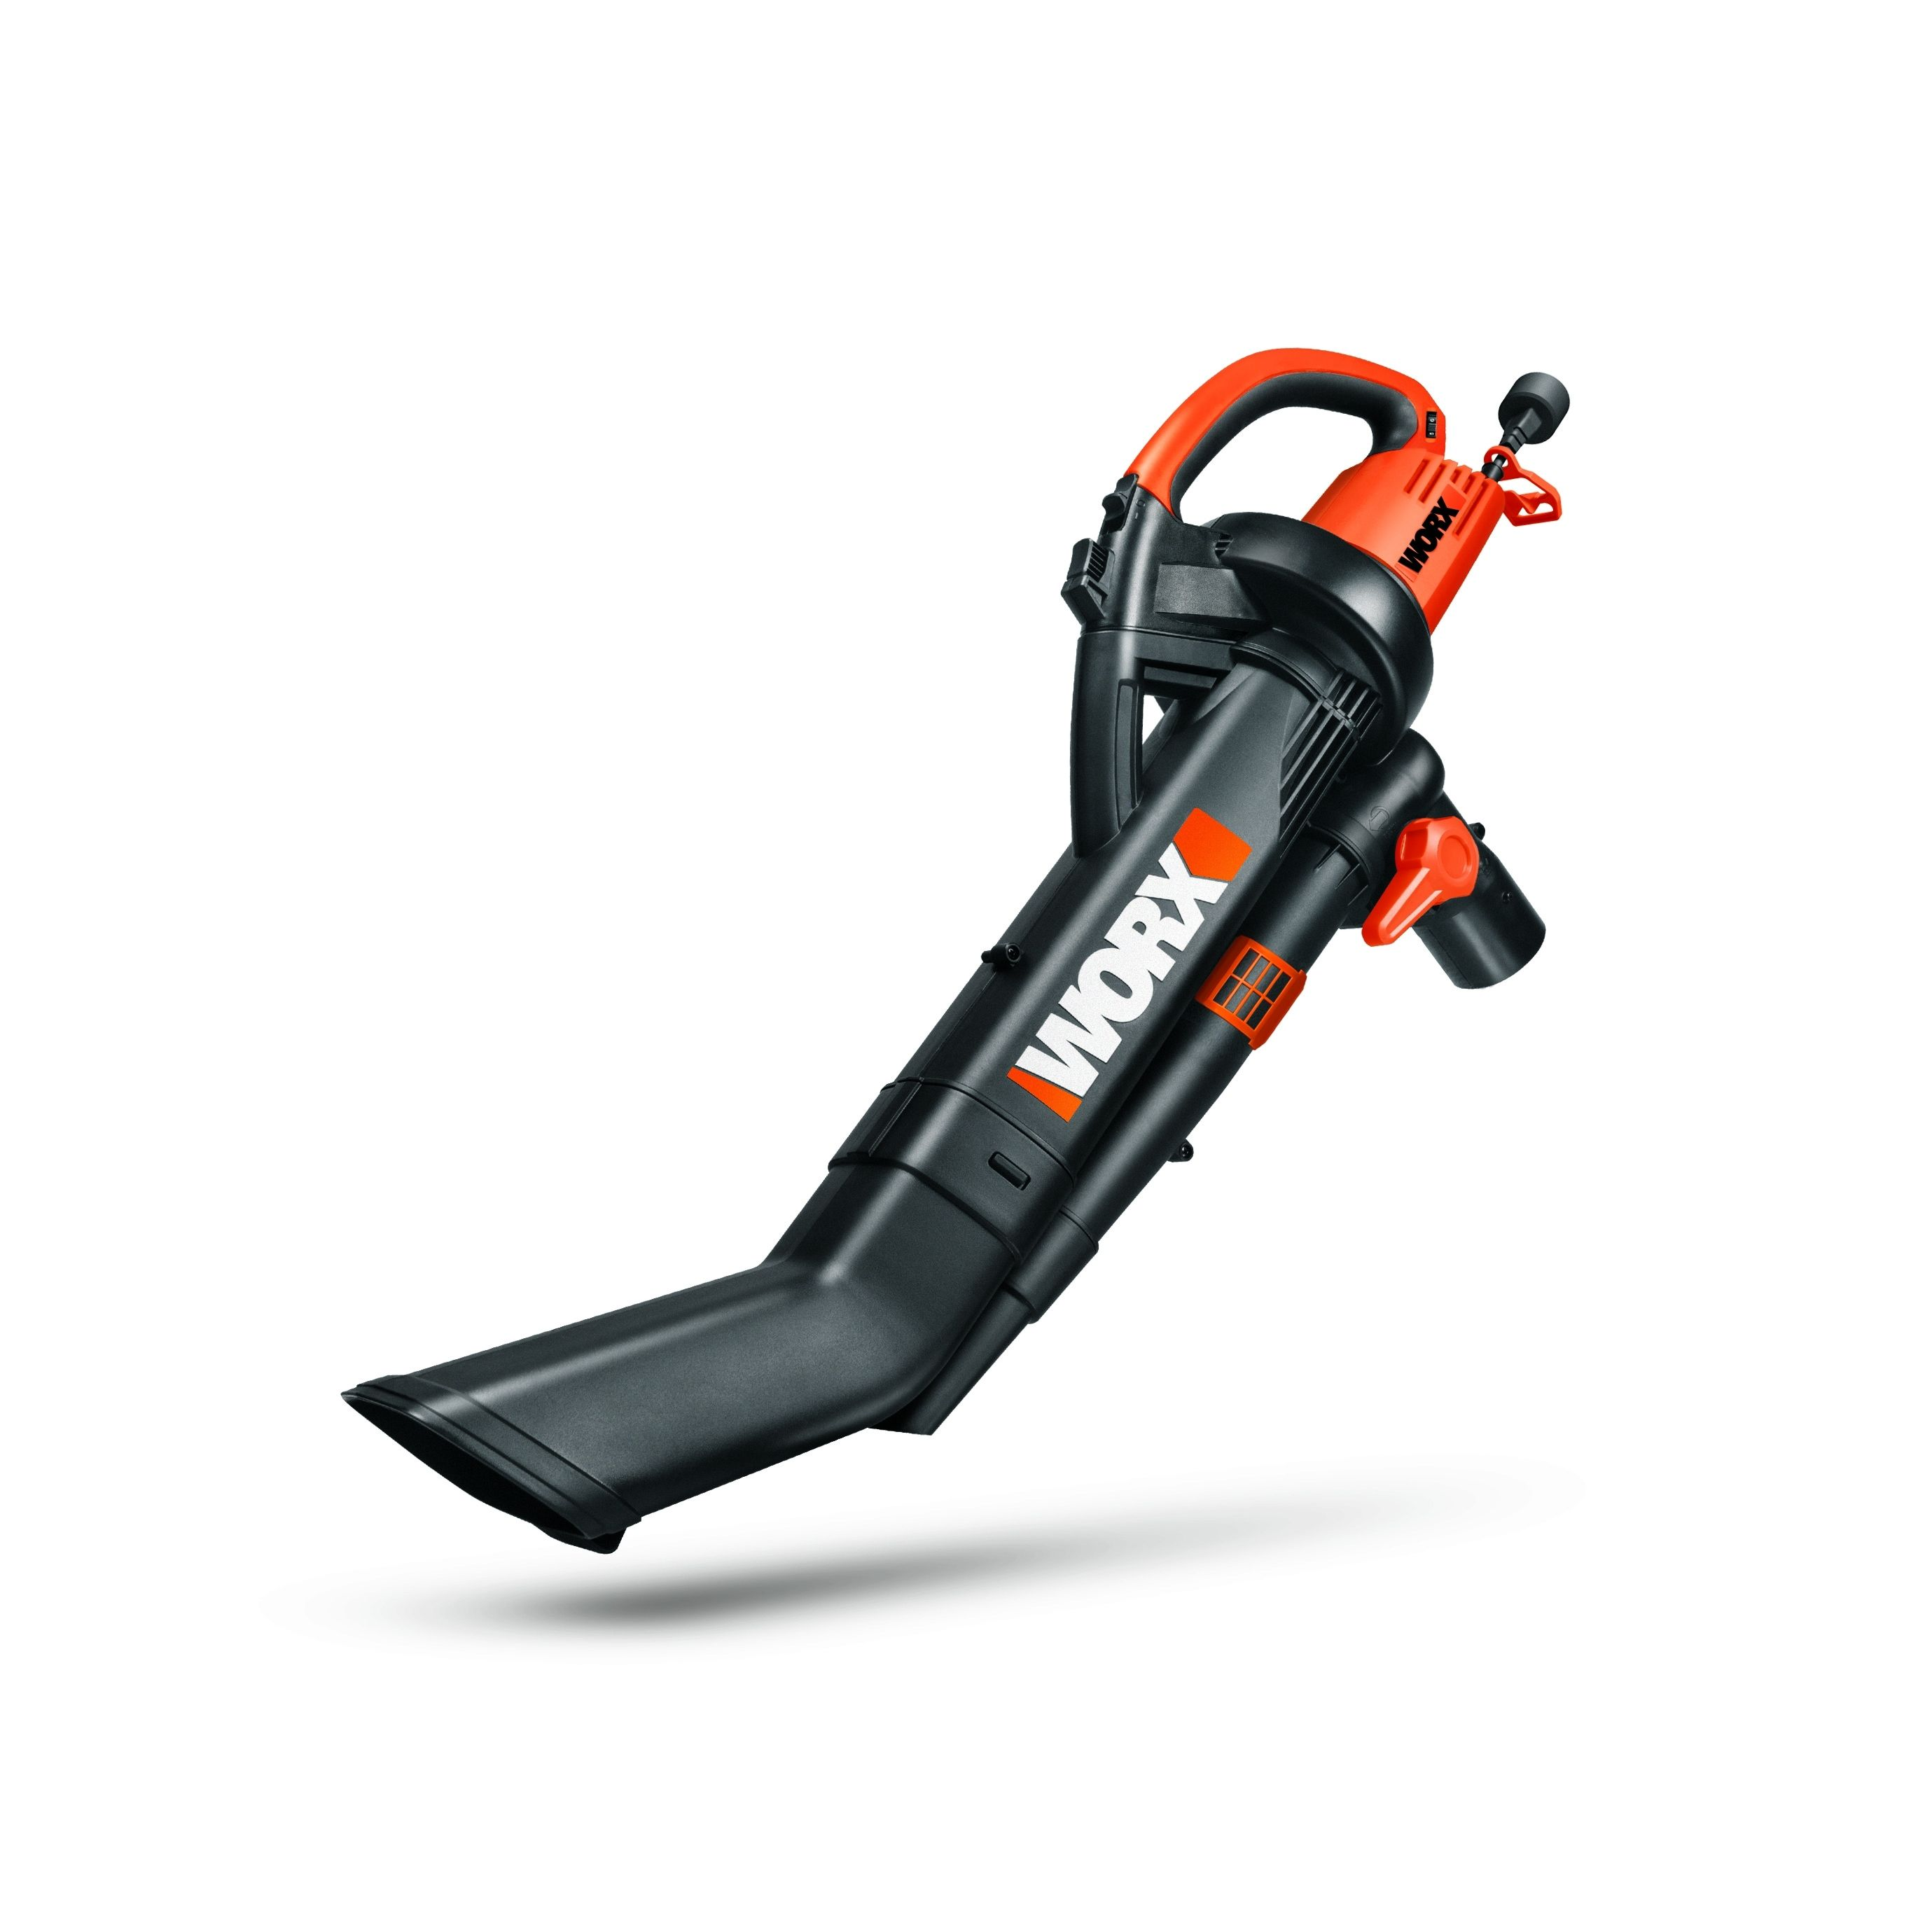 The Worx Trivac Blower Mulcher Vacuum Brings 3 Functions Together In One Compact Light Weight Machine Includes A 3 Mulching Blowers Electric Leaf Blowers